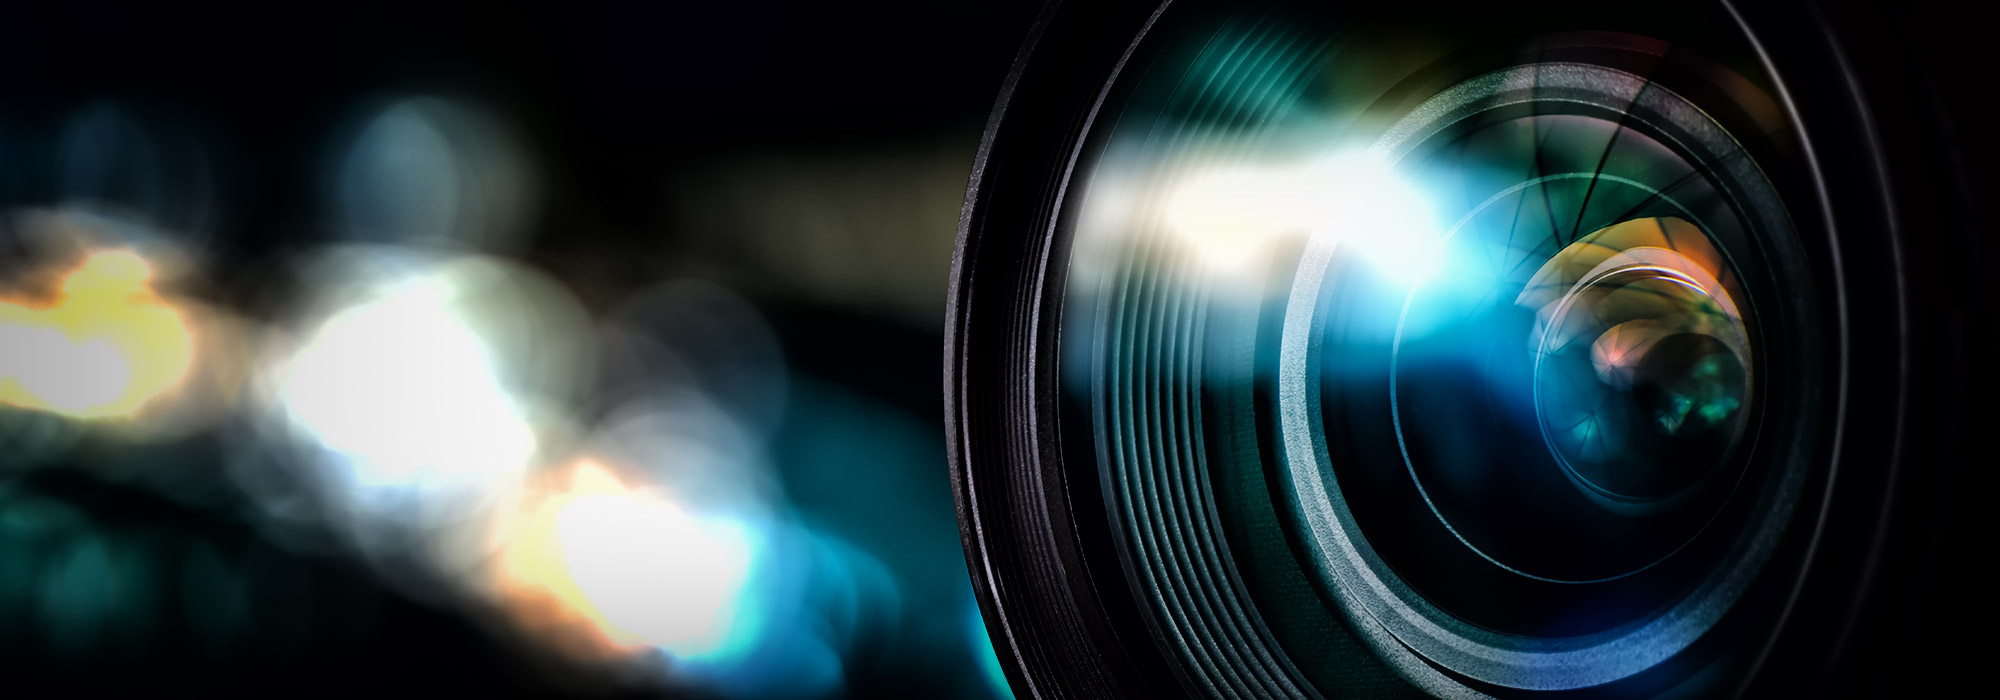 closeup view of a camera lense against a dark background with out of focus lights